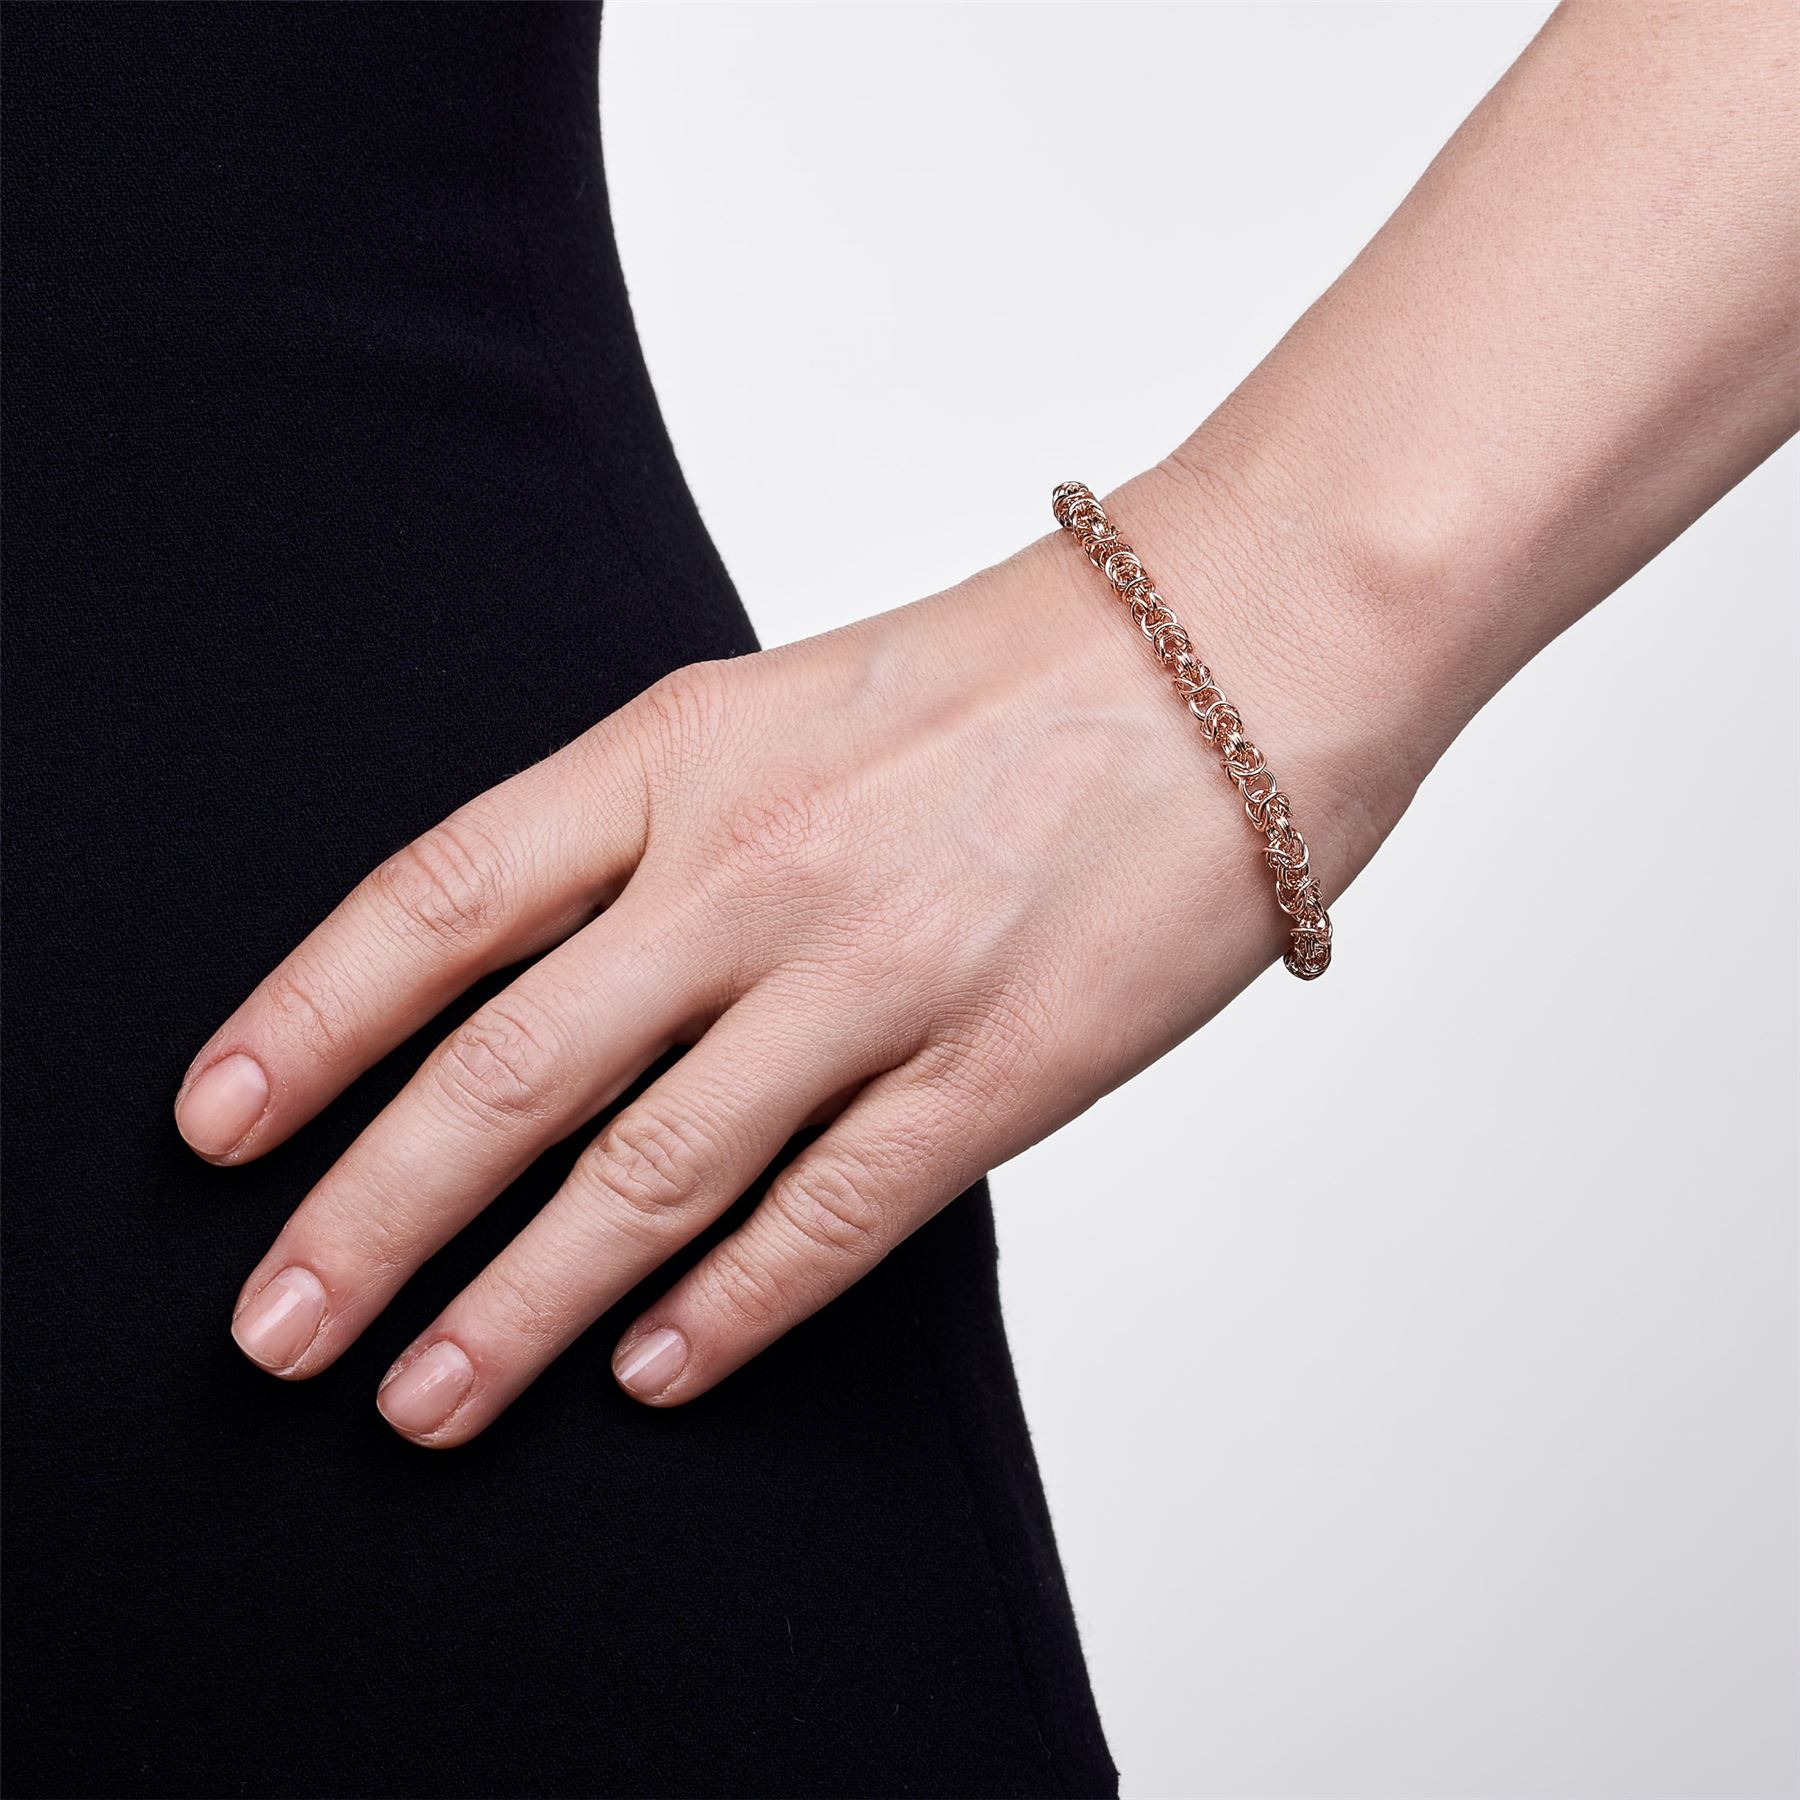 Amberta-Genuine-Real-925-Sterling-Silver-Chain-Bracelet-for-Women-from-Italy miniature 18